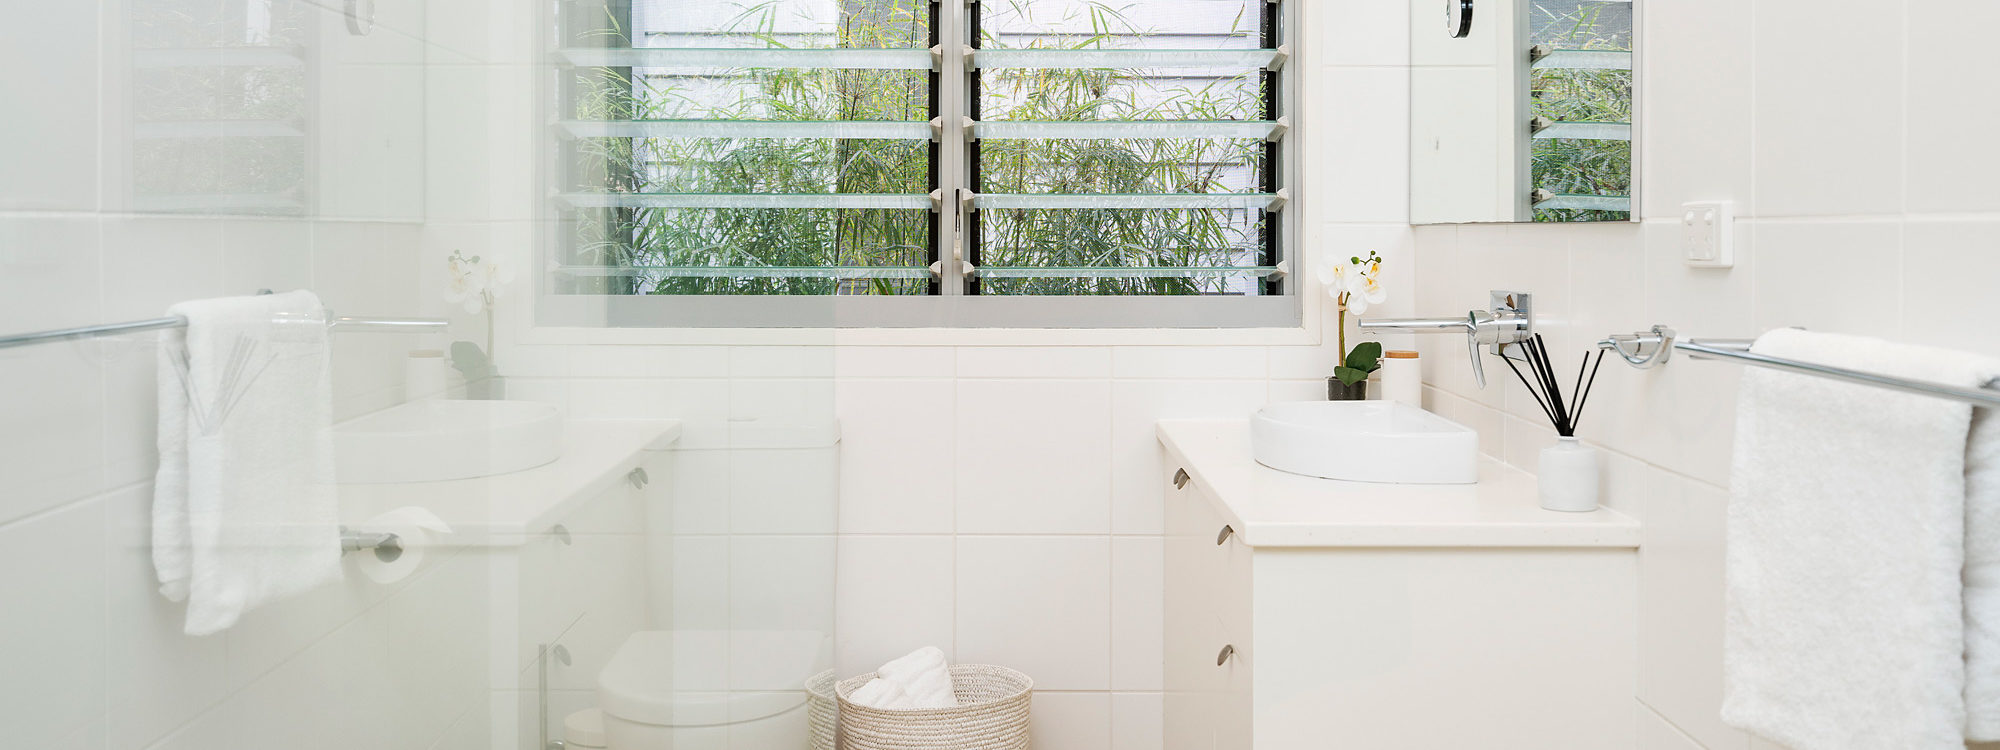 The White Rabbit - Byron Bay - Bathroom Studio